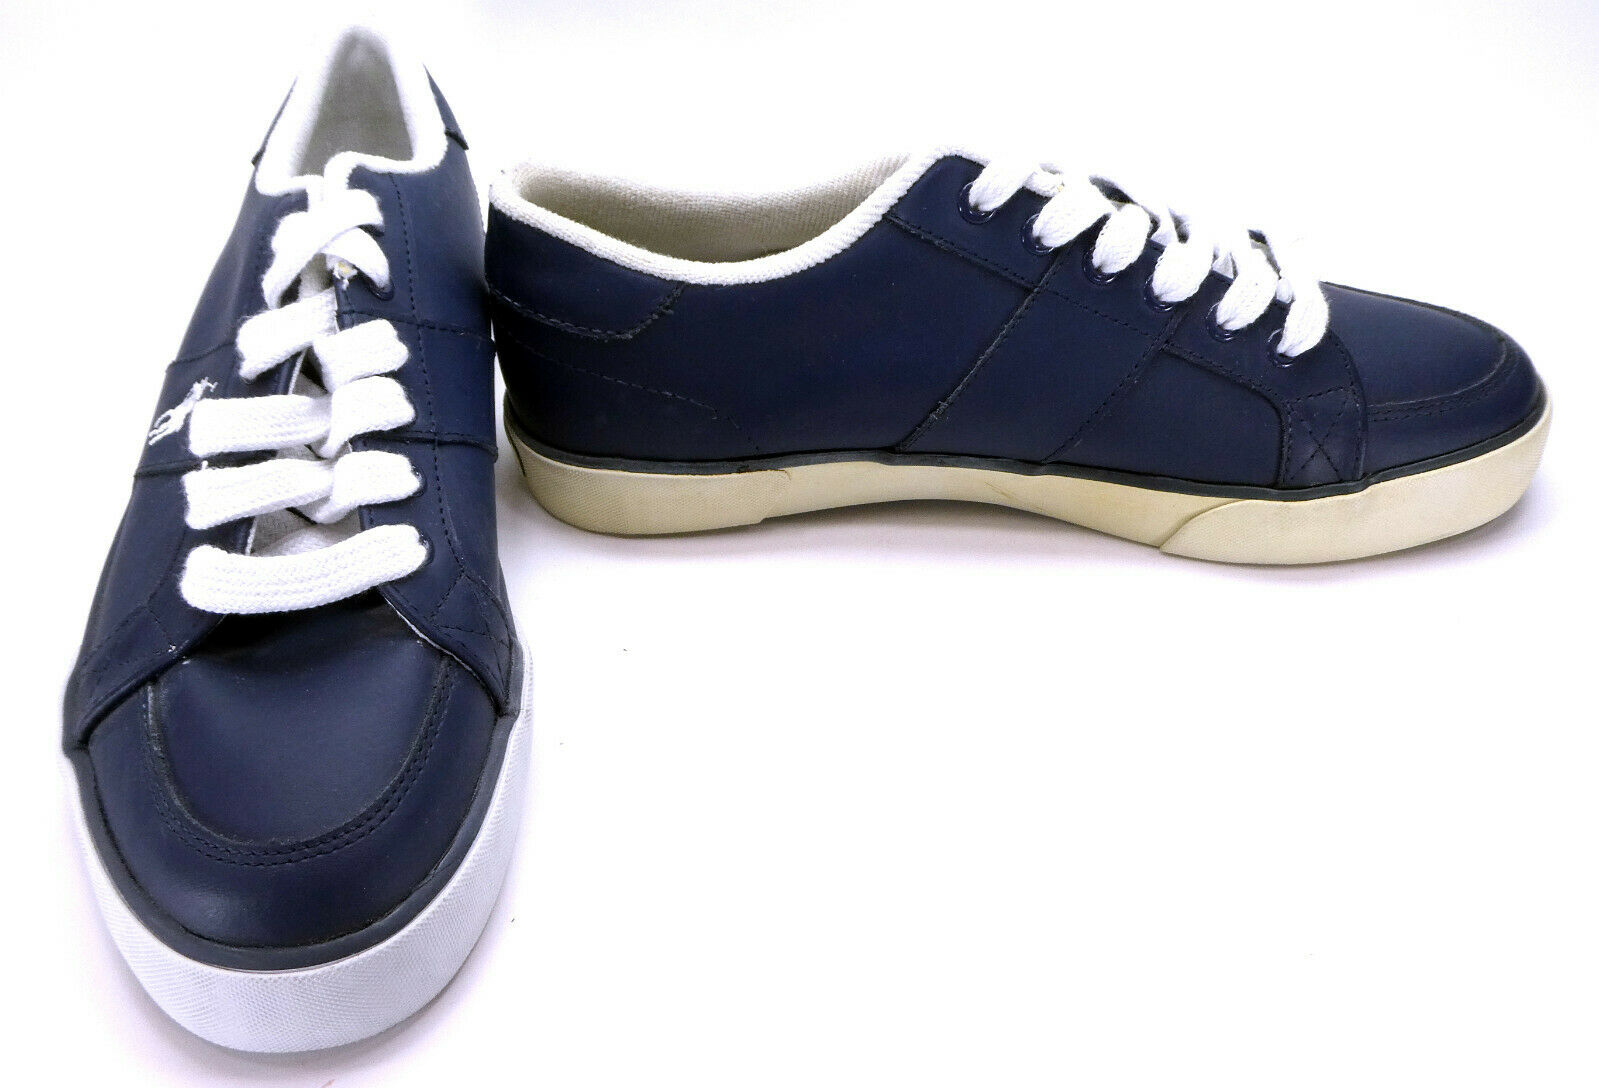 Polo Ralph Lauren shoes Harold Leather Navy bluee White Sneakers Size 8.5